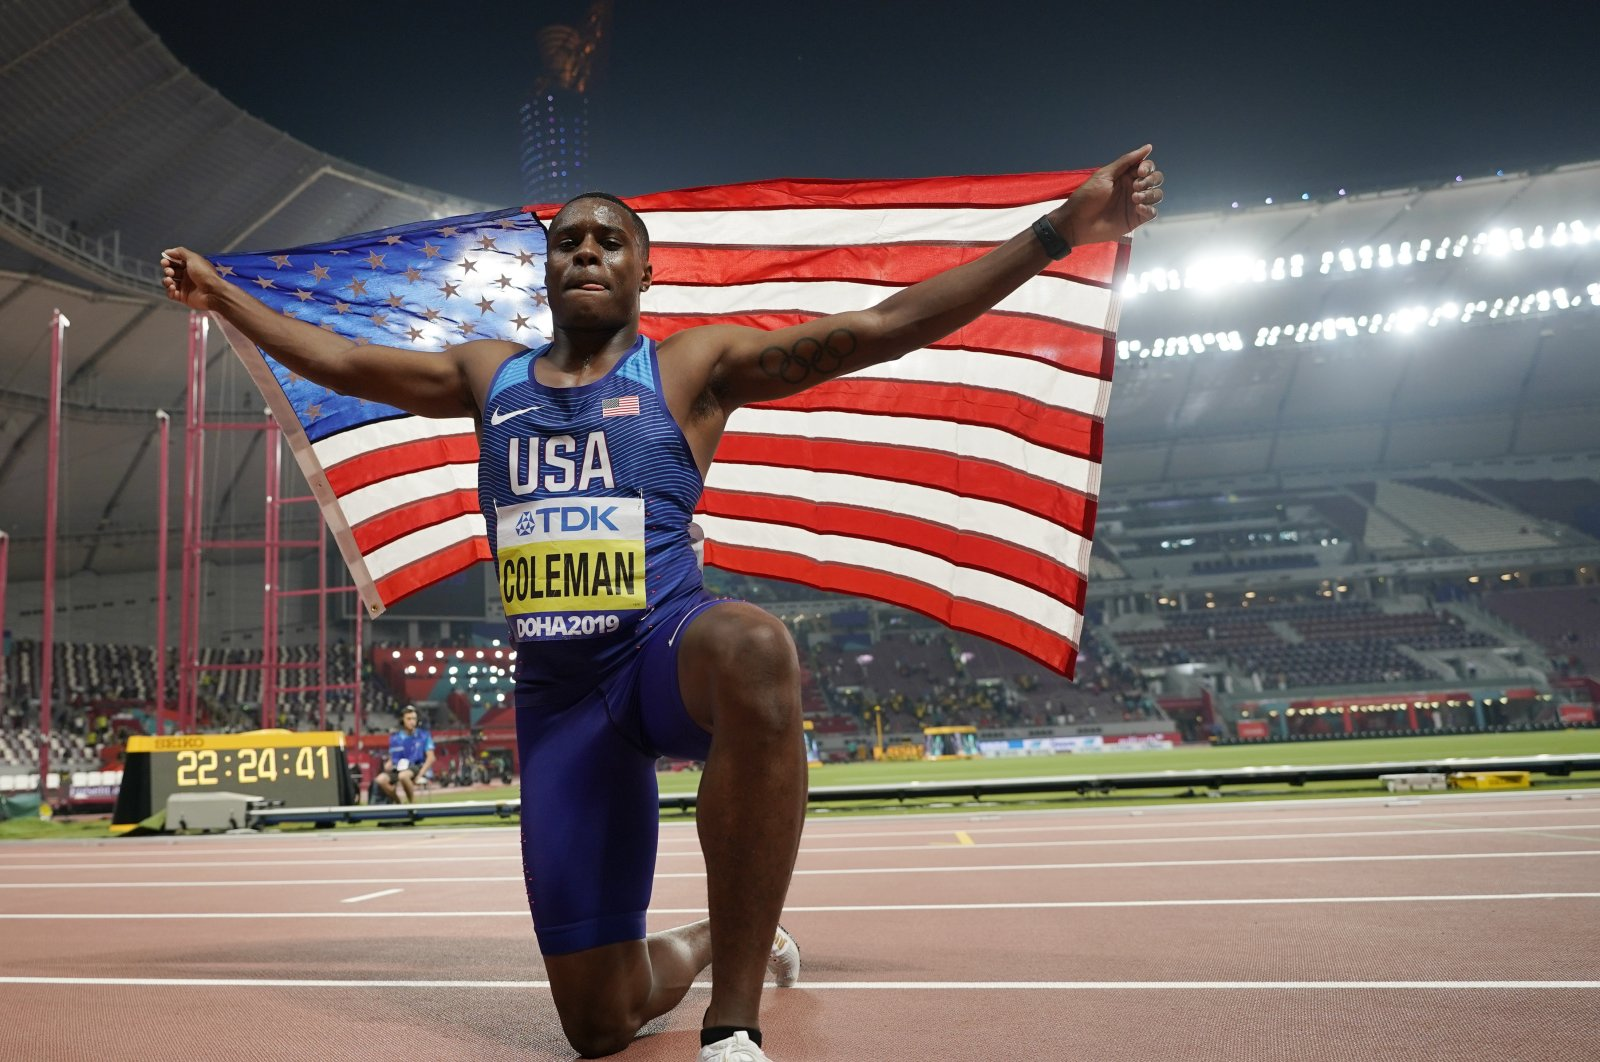 Christian Coleman, of the United States, celebrates winning the gold medal in the men's 100 meter final race at the World Athletics Championships in Doha, Qatar, Sept. 28, 2019. (AP Photo)